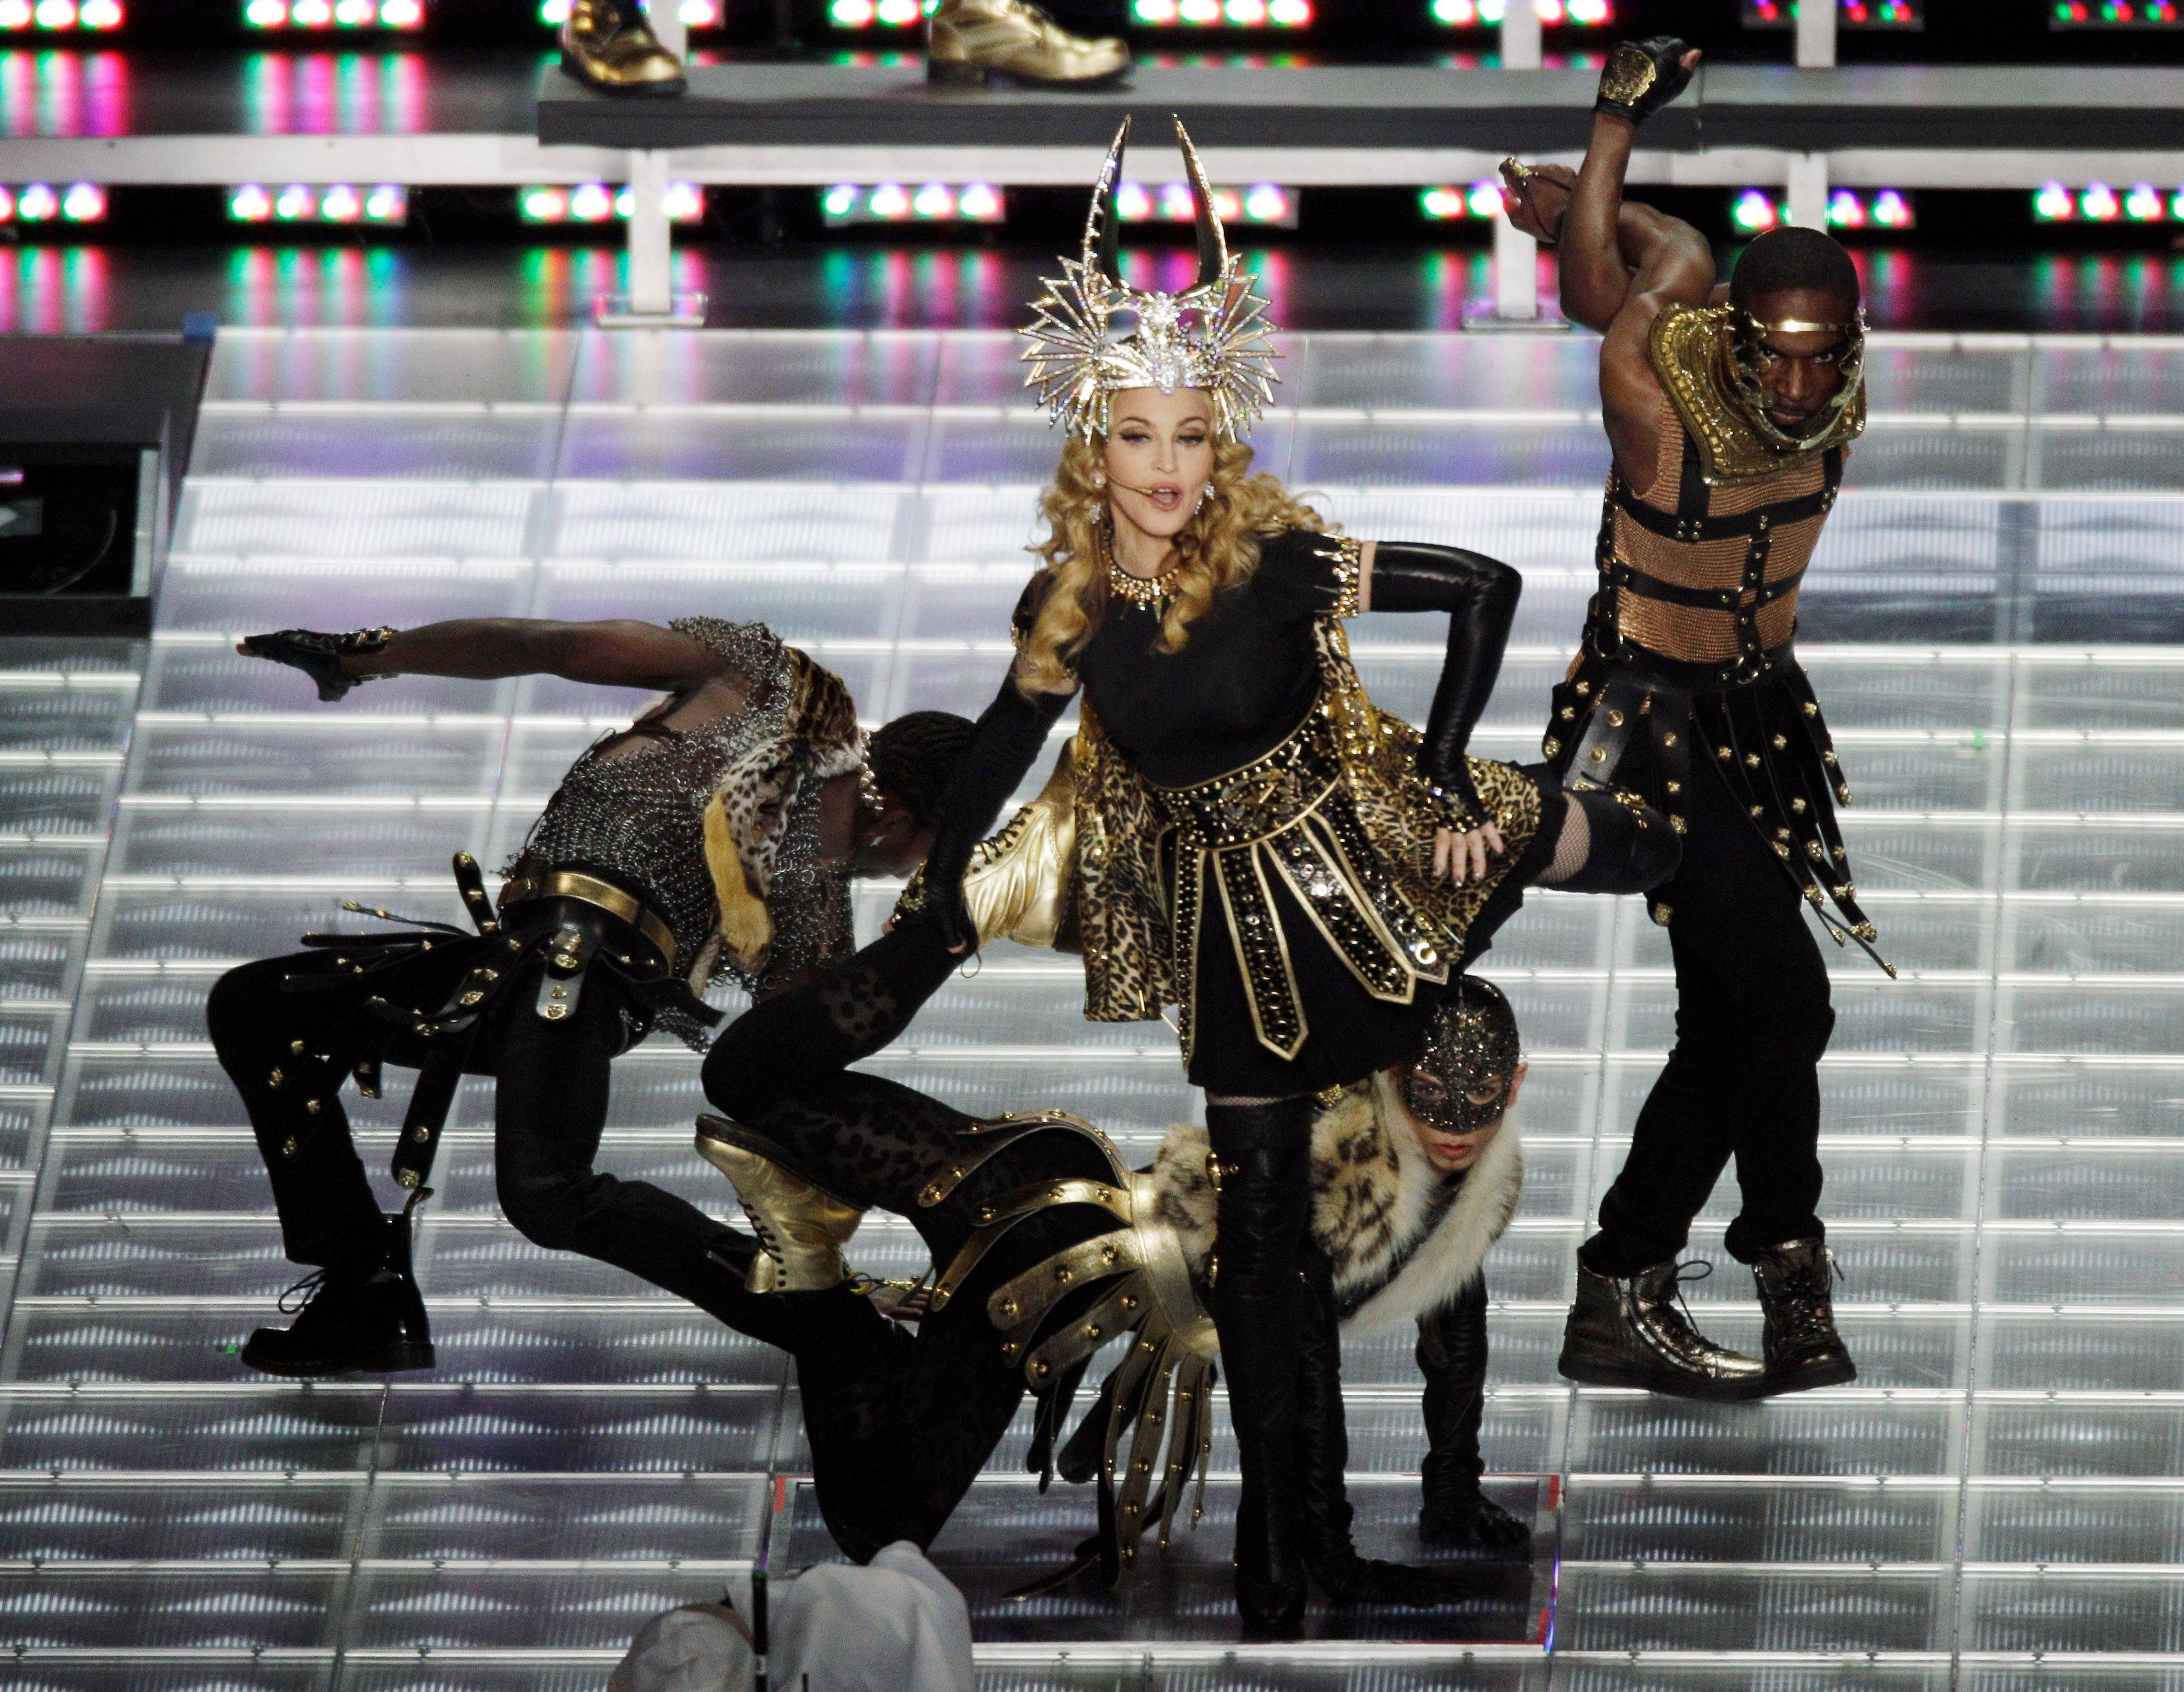 Madonna performs during halftime of the NFL Super Bowl XLVI football game between the New York Giants and the New England Patriots Sunday in Indianapolis.